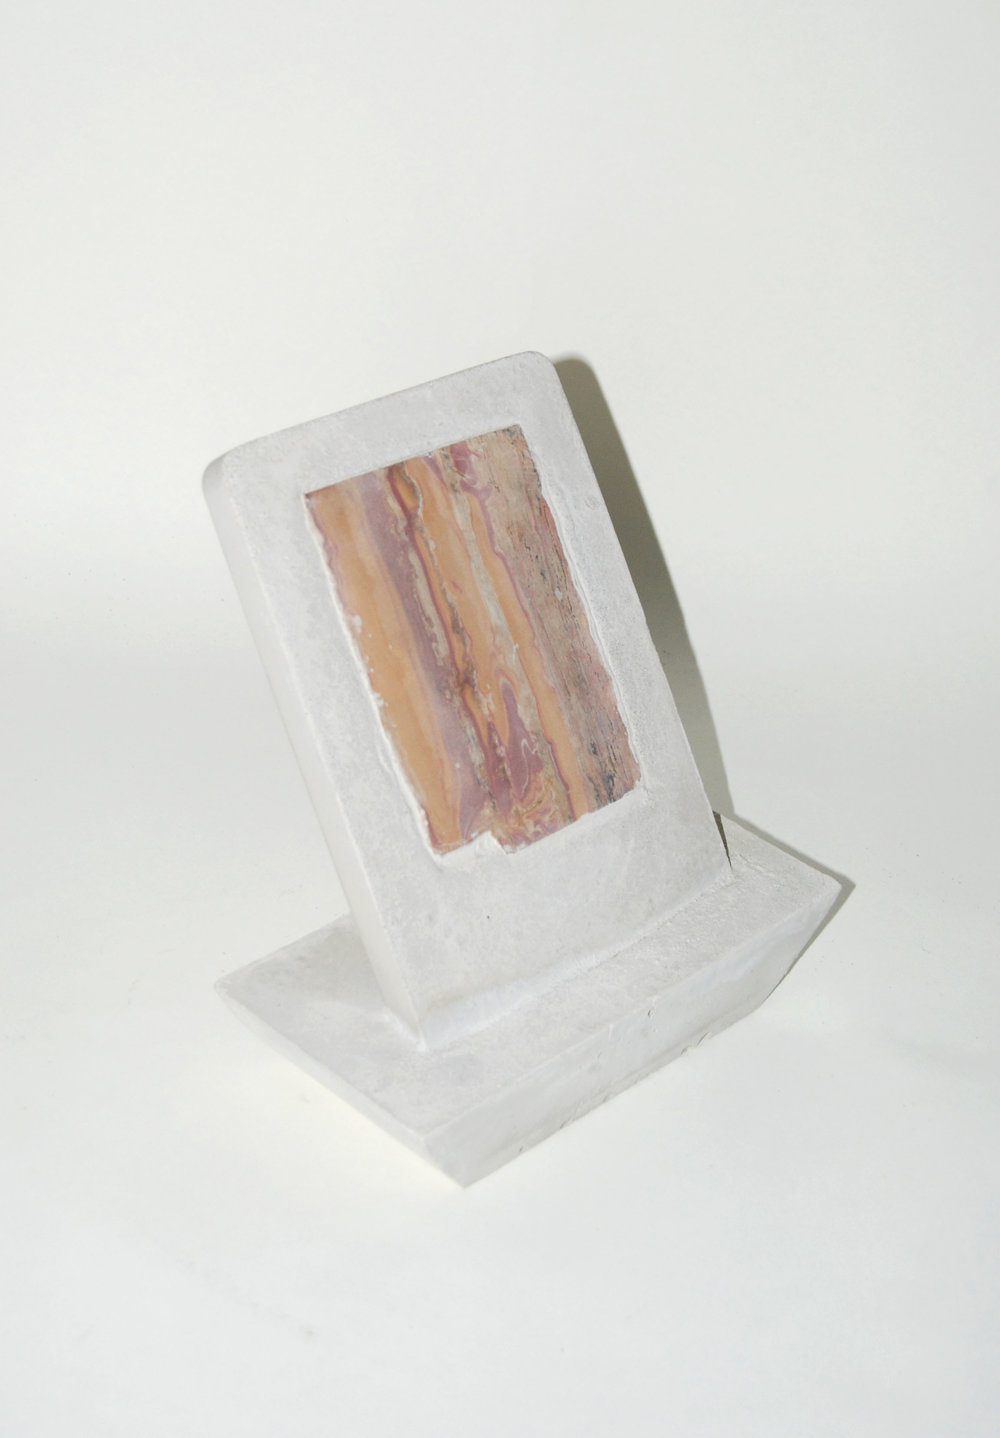 Slab Series 2 No. 1 by Cat Lauigan